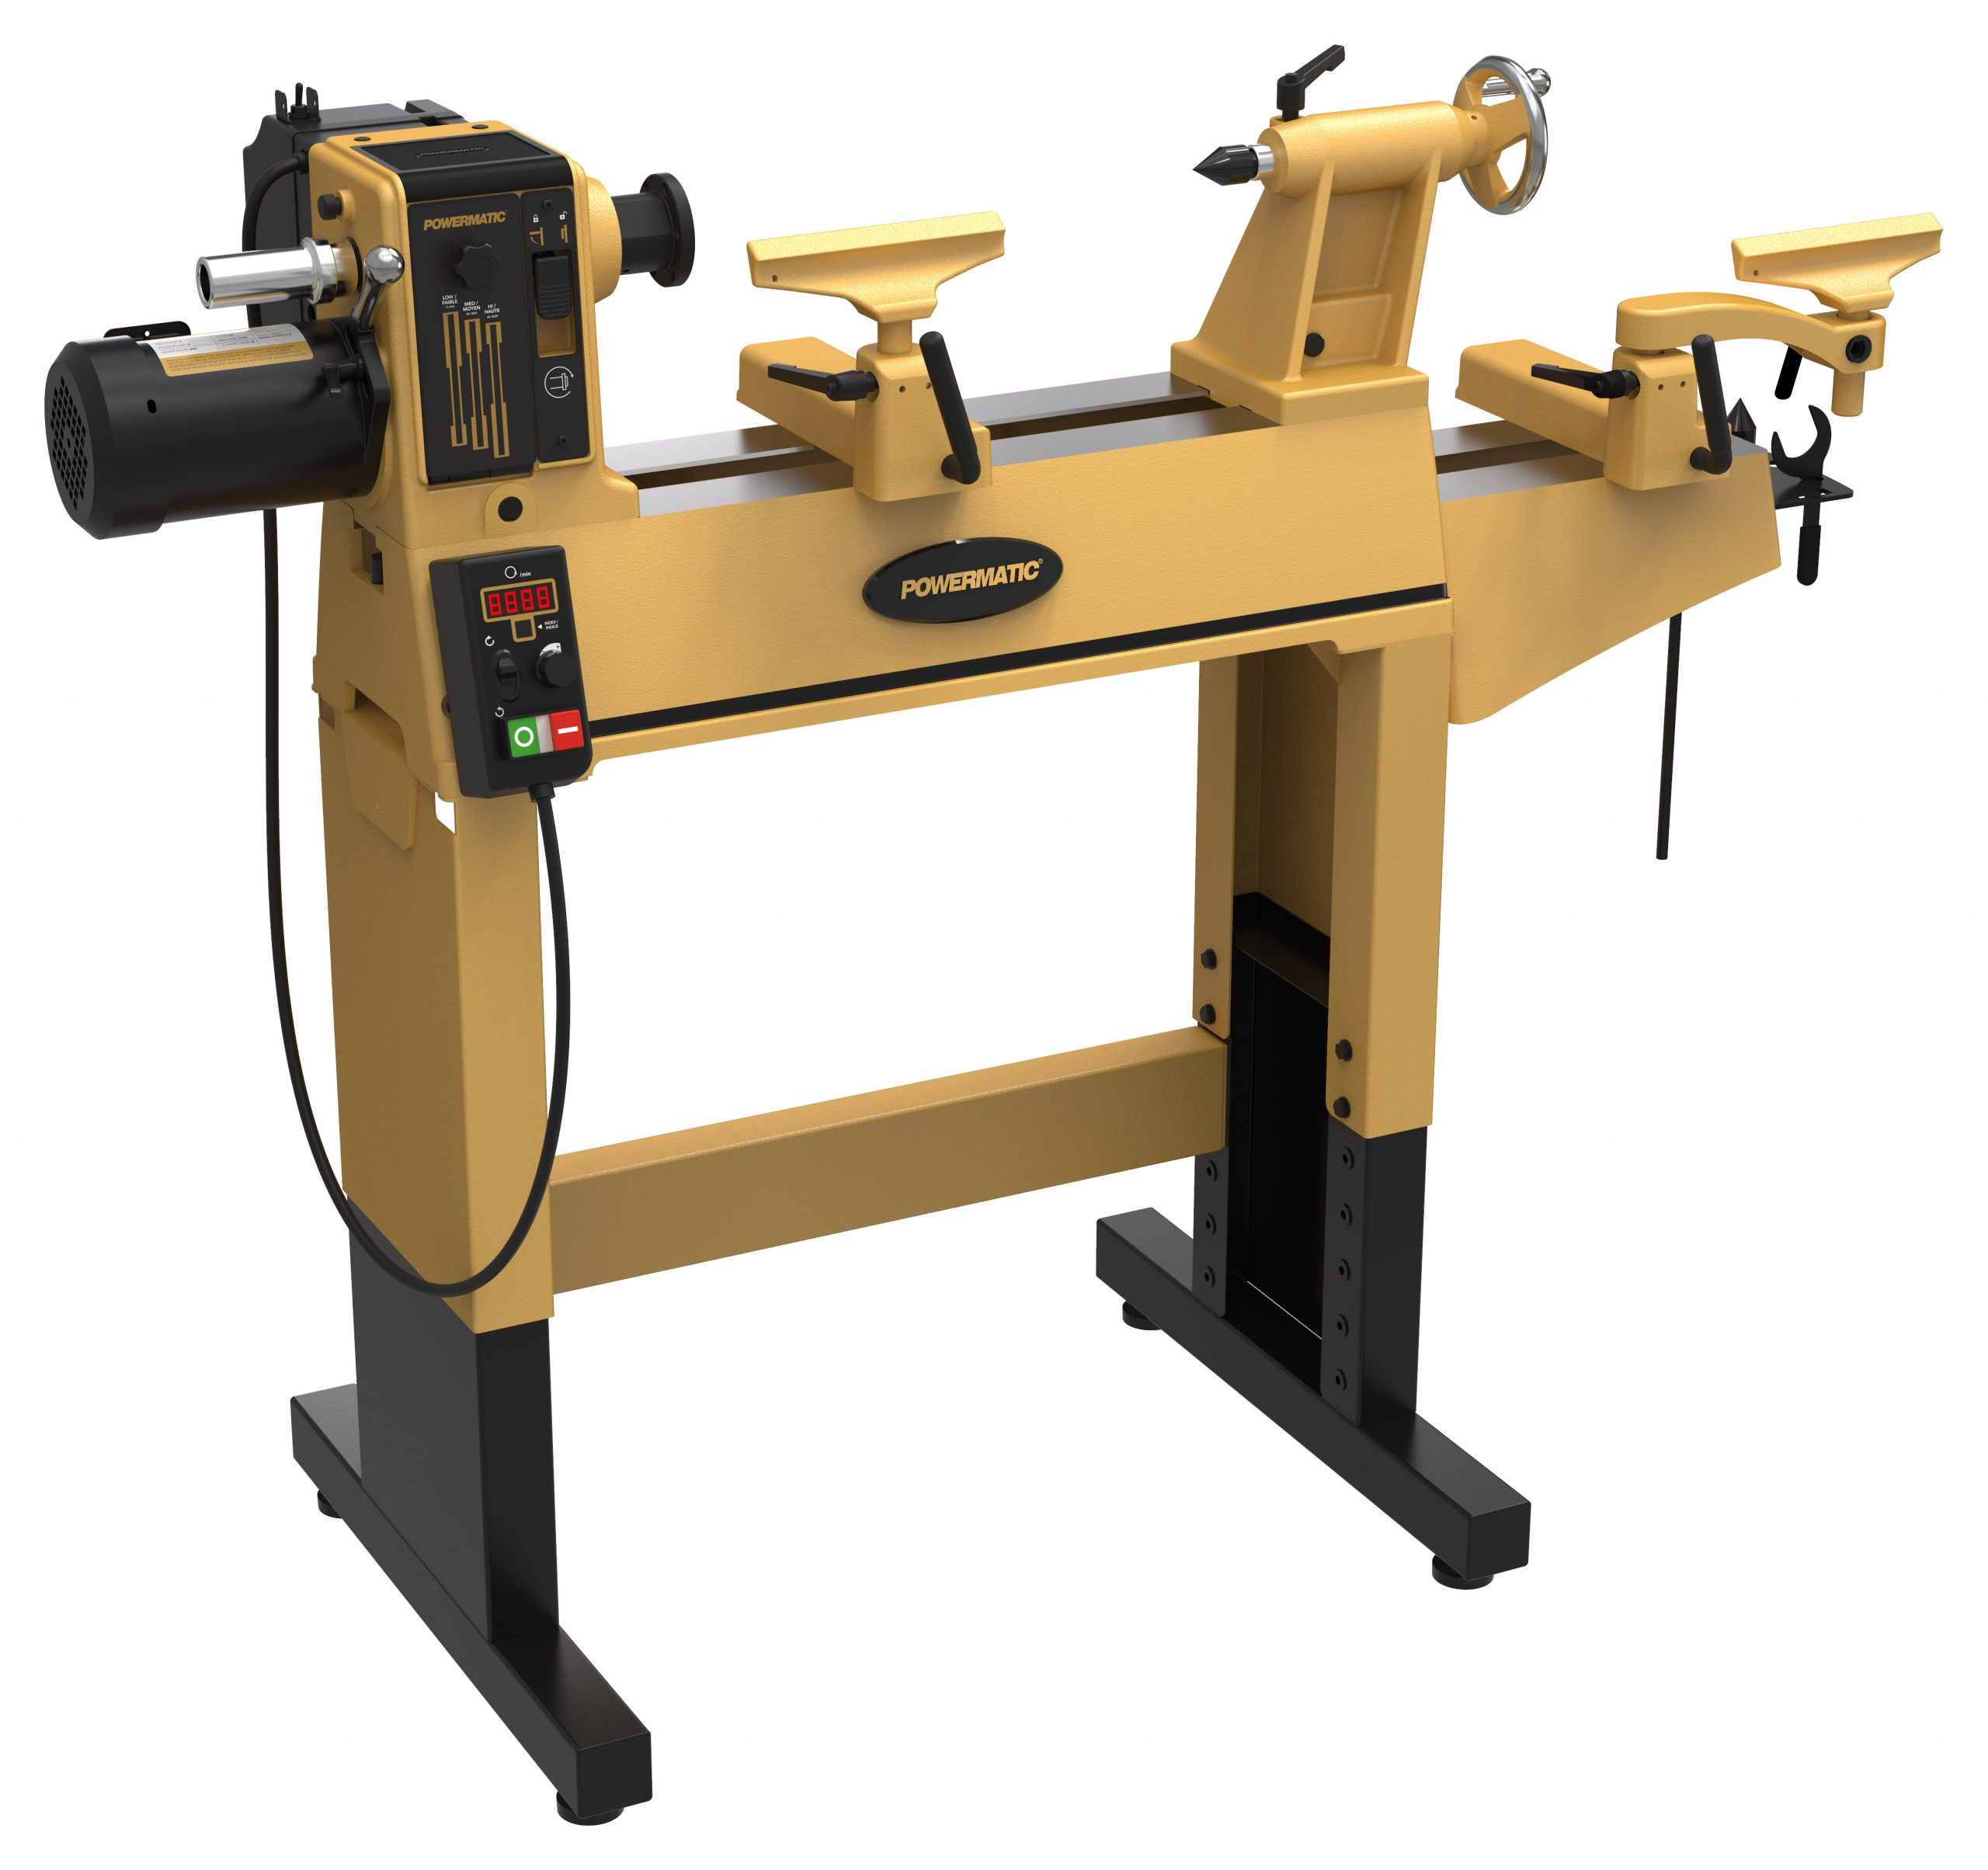 picture of the woodworking tool that is discussed throughout the article